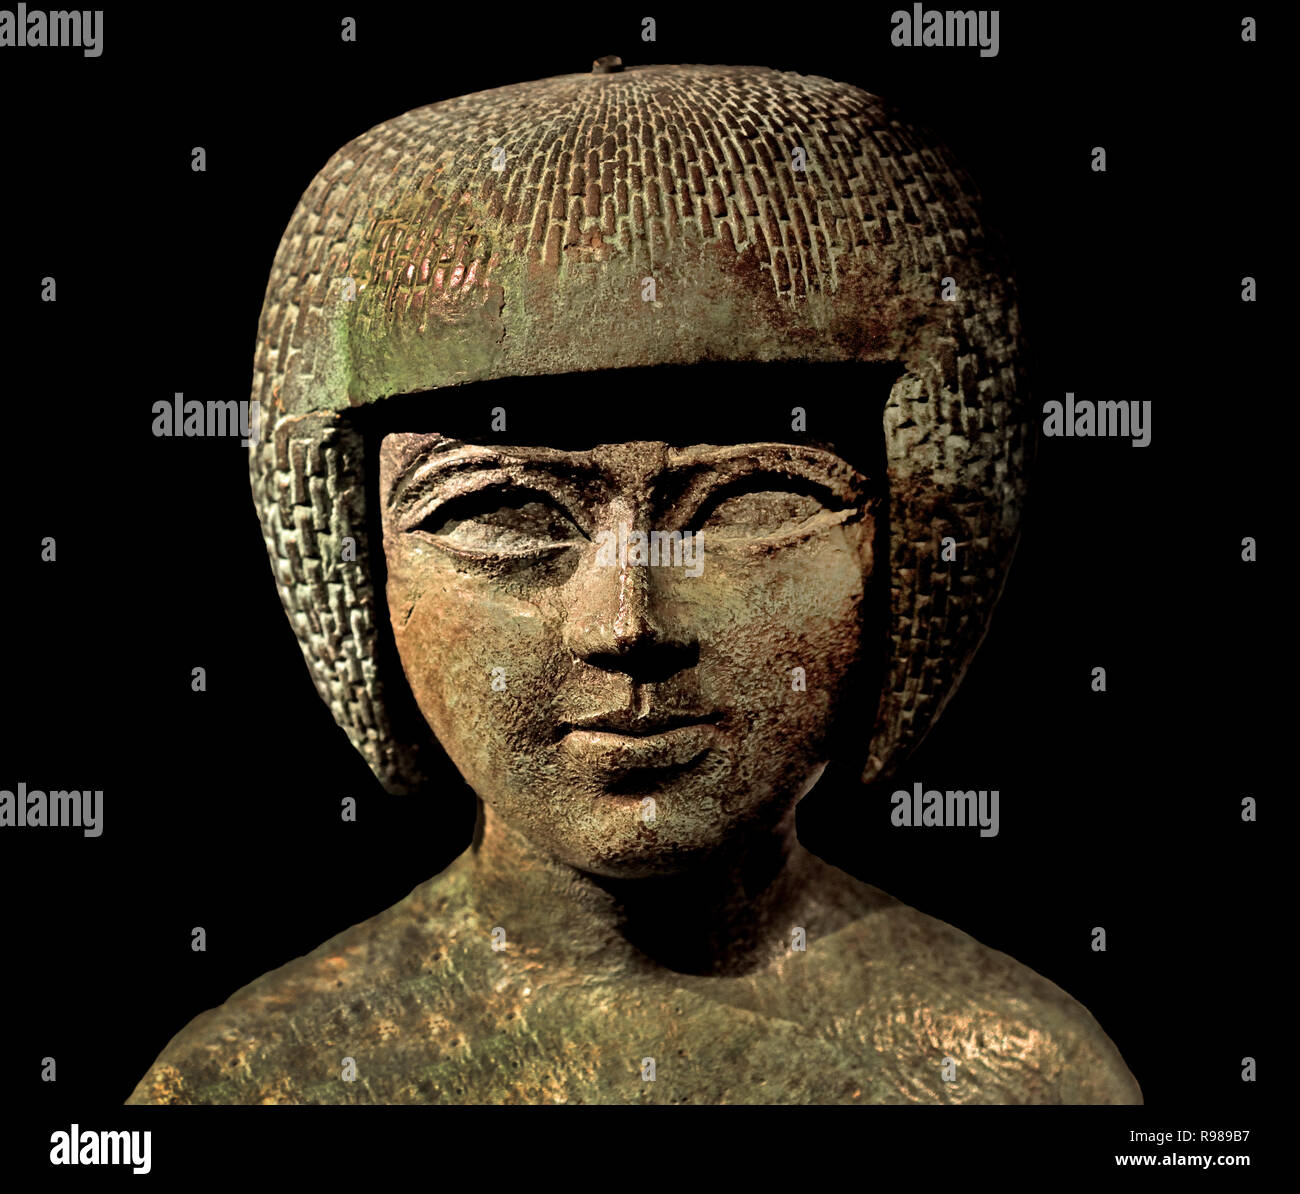 Portrait of priestess bronze. Period: Third Intermediate Period; 22nd Dynasty 945-712 BC (Temple Musician) Egypt, Egyptian. - Stock Image